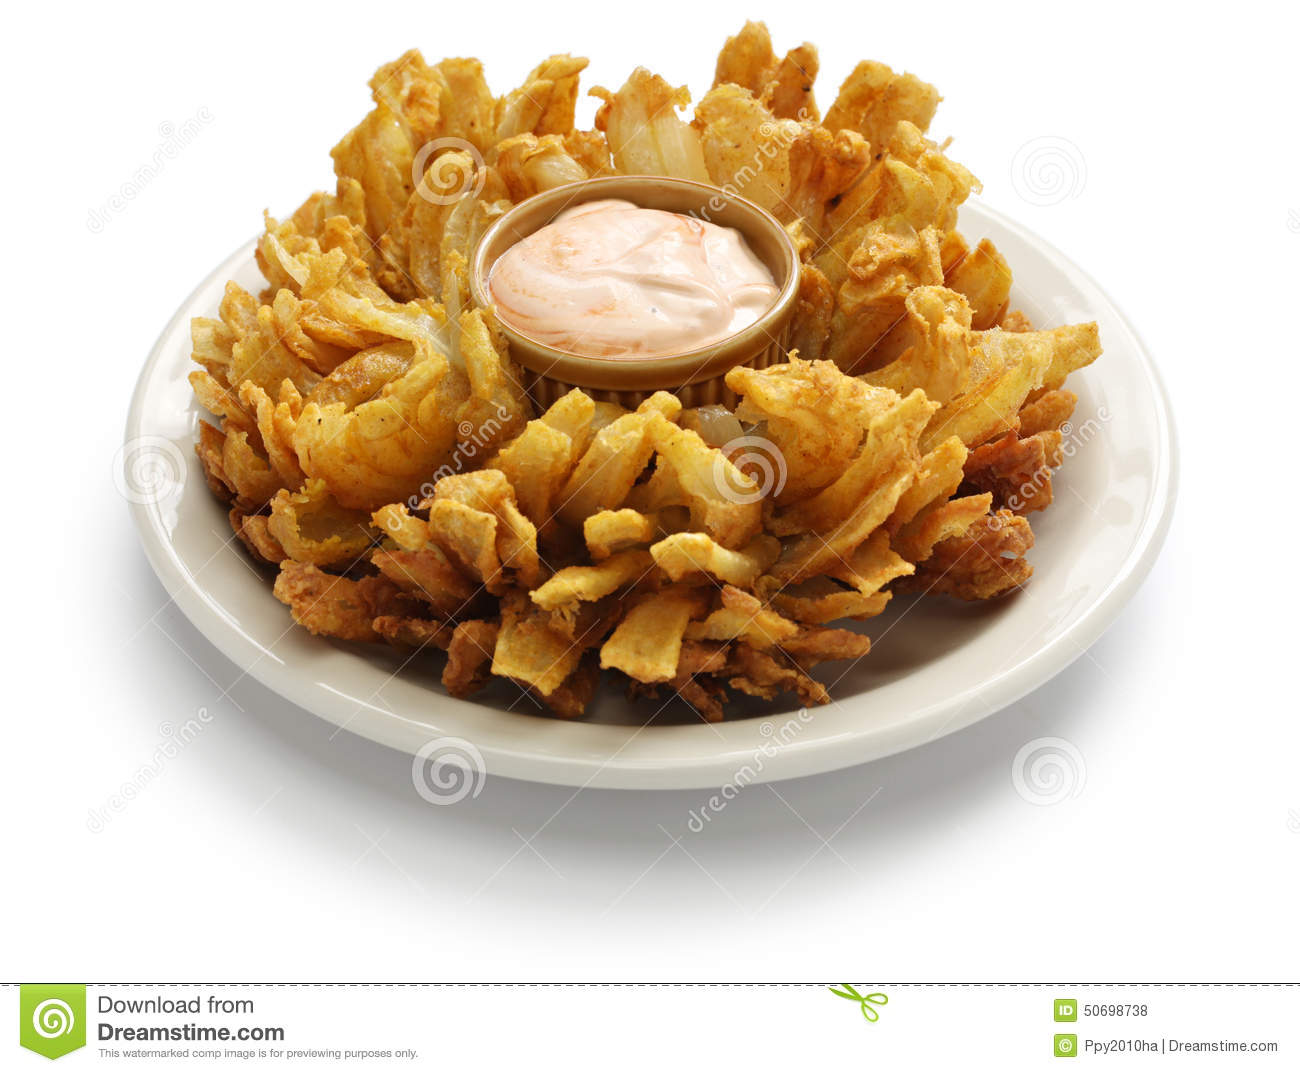 Homemade blooming onion isolated on white background